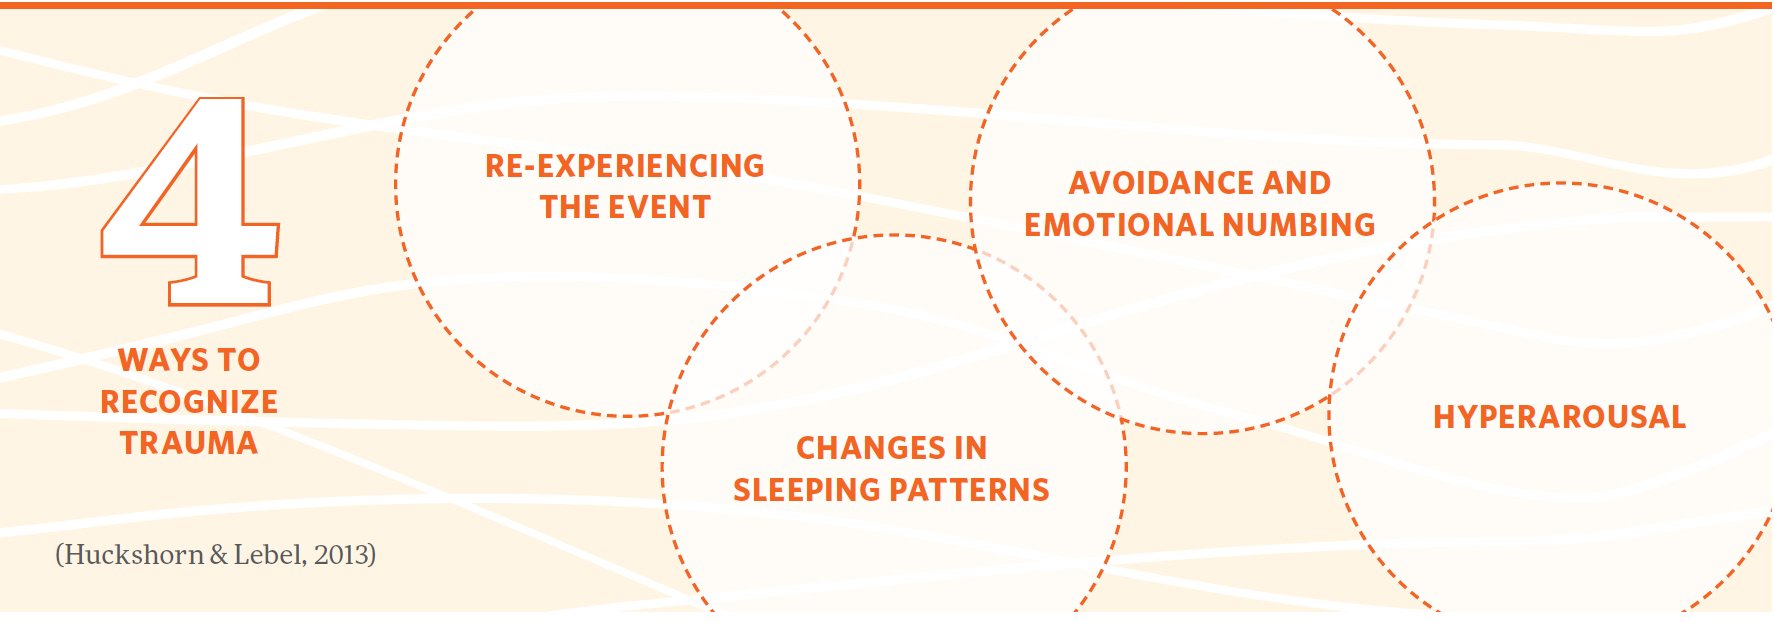 Four ways to recognize trauma: Re-experiencing the event Changes in sleeping patterns Avoidance and emotional numbing Hyperarousal (Huckshorn & Lebel, 2013)